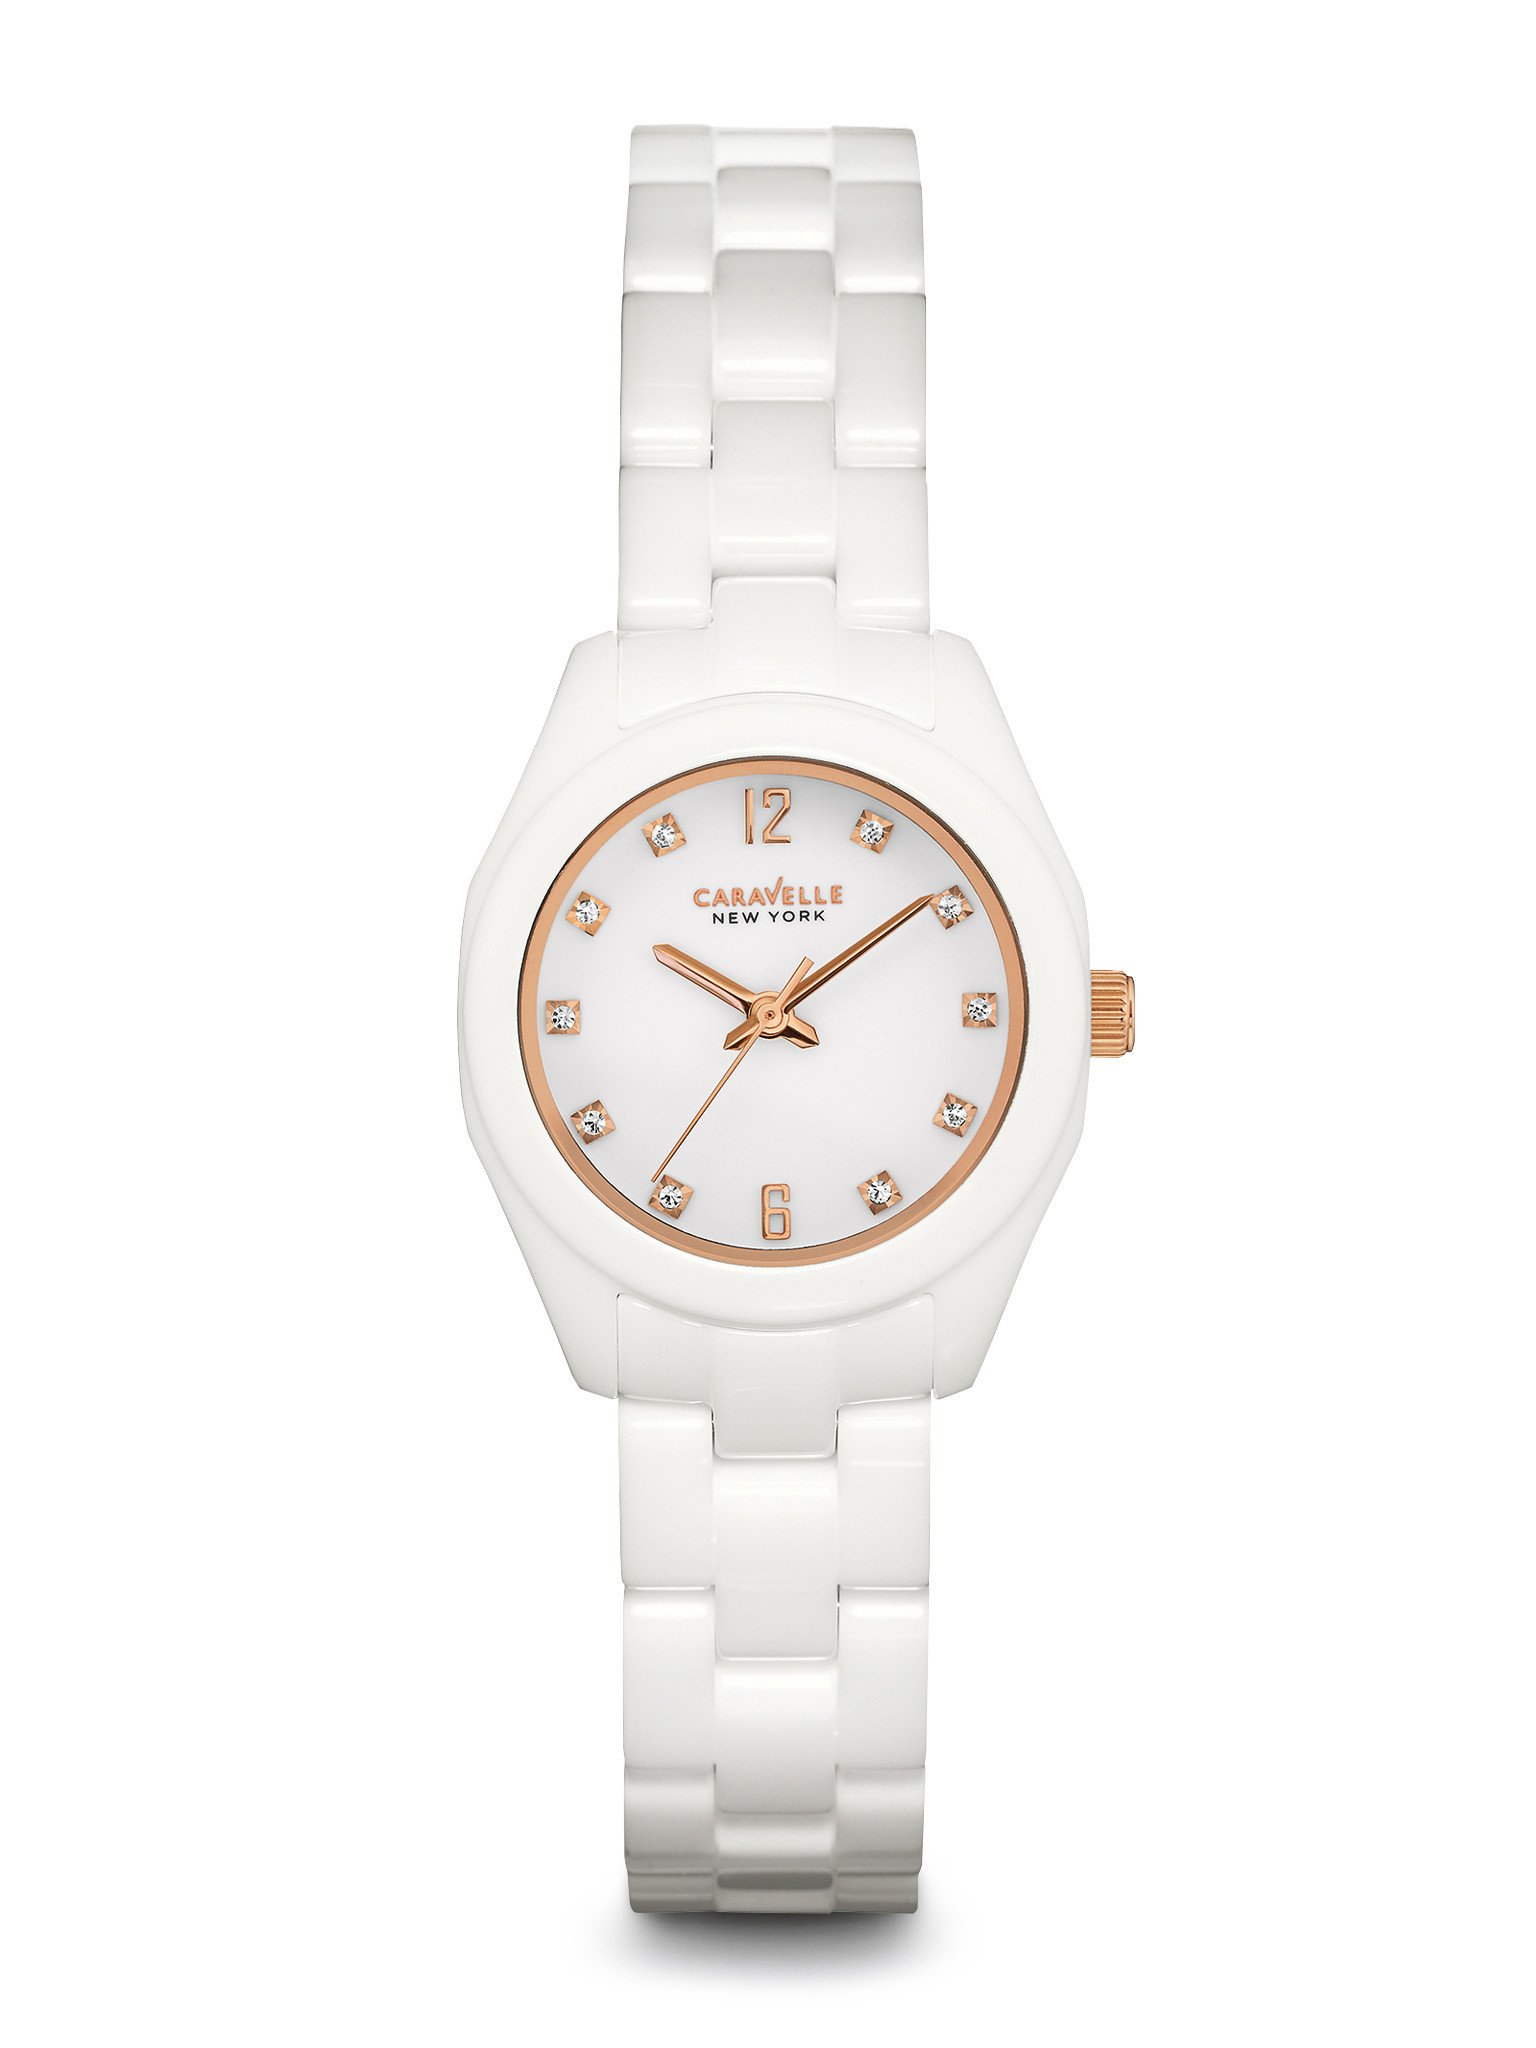 New York watch for women - White dial